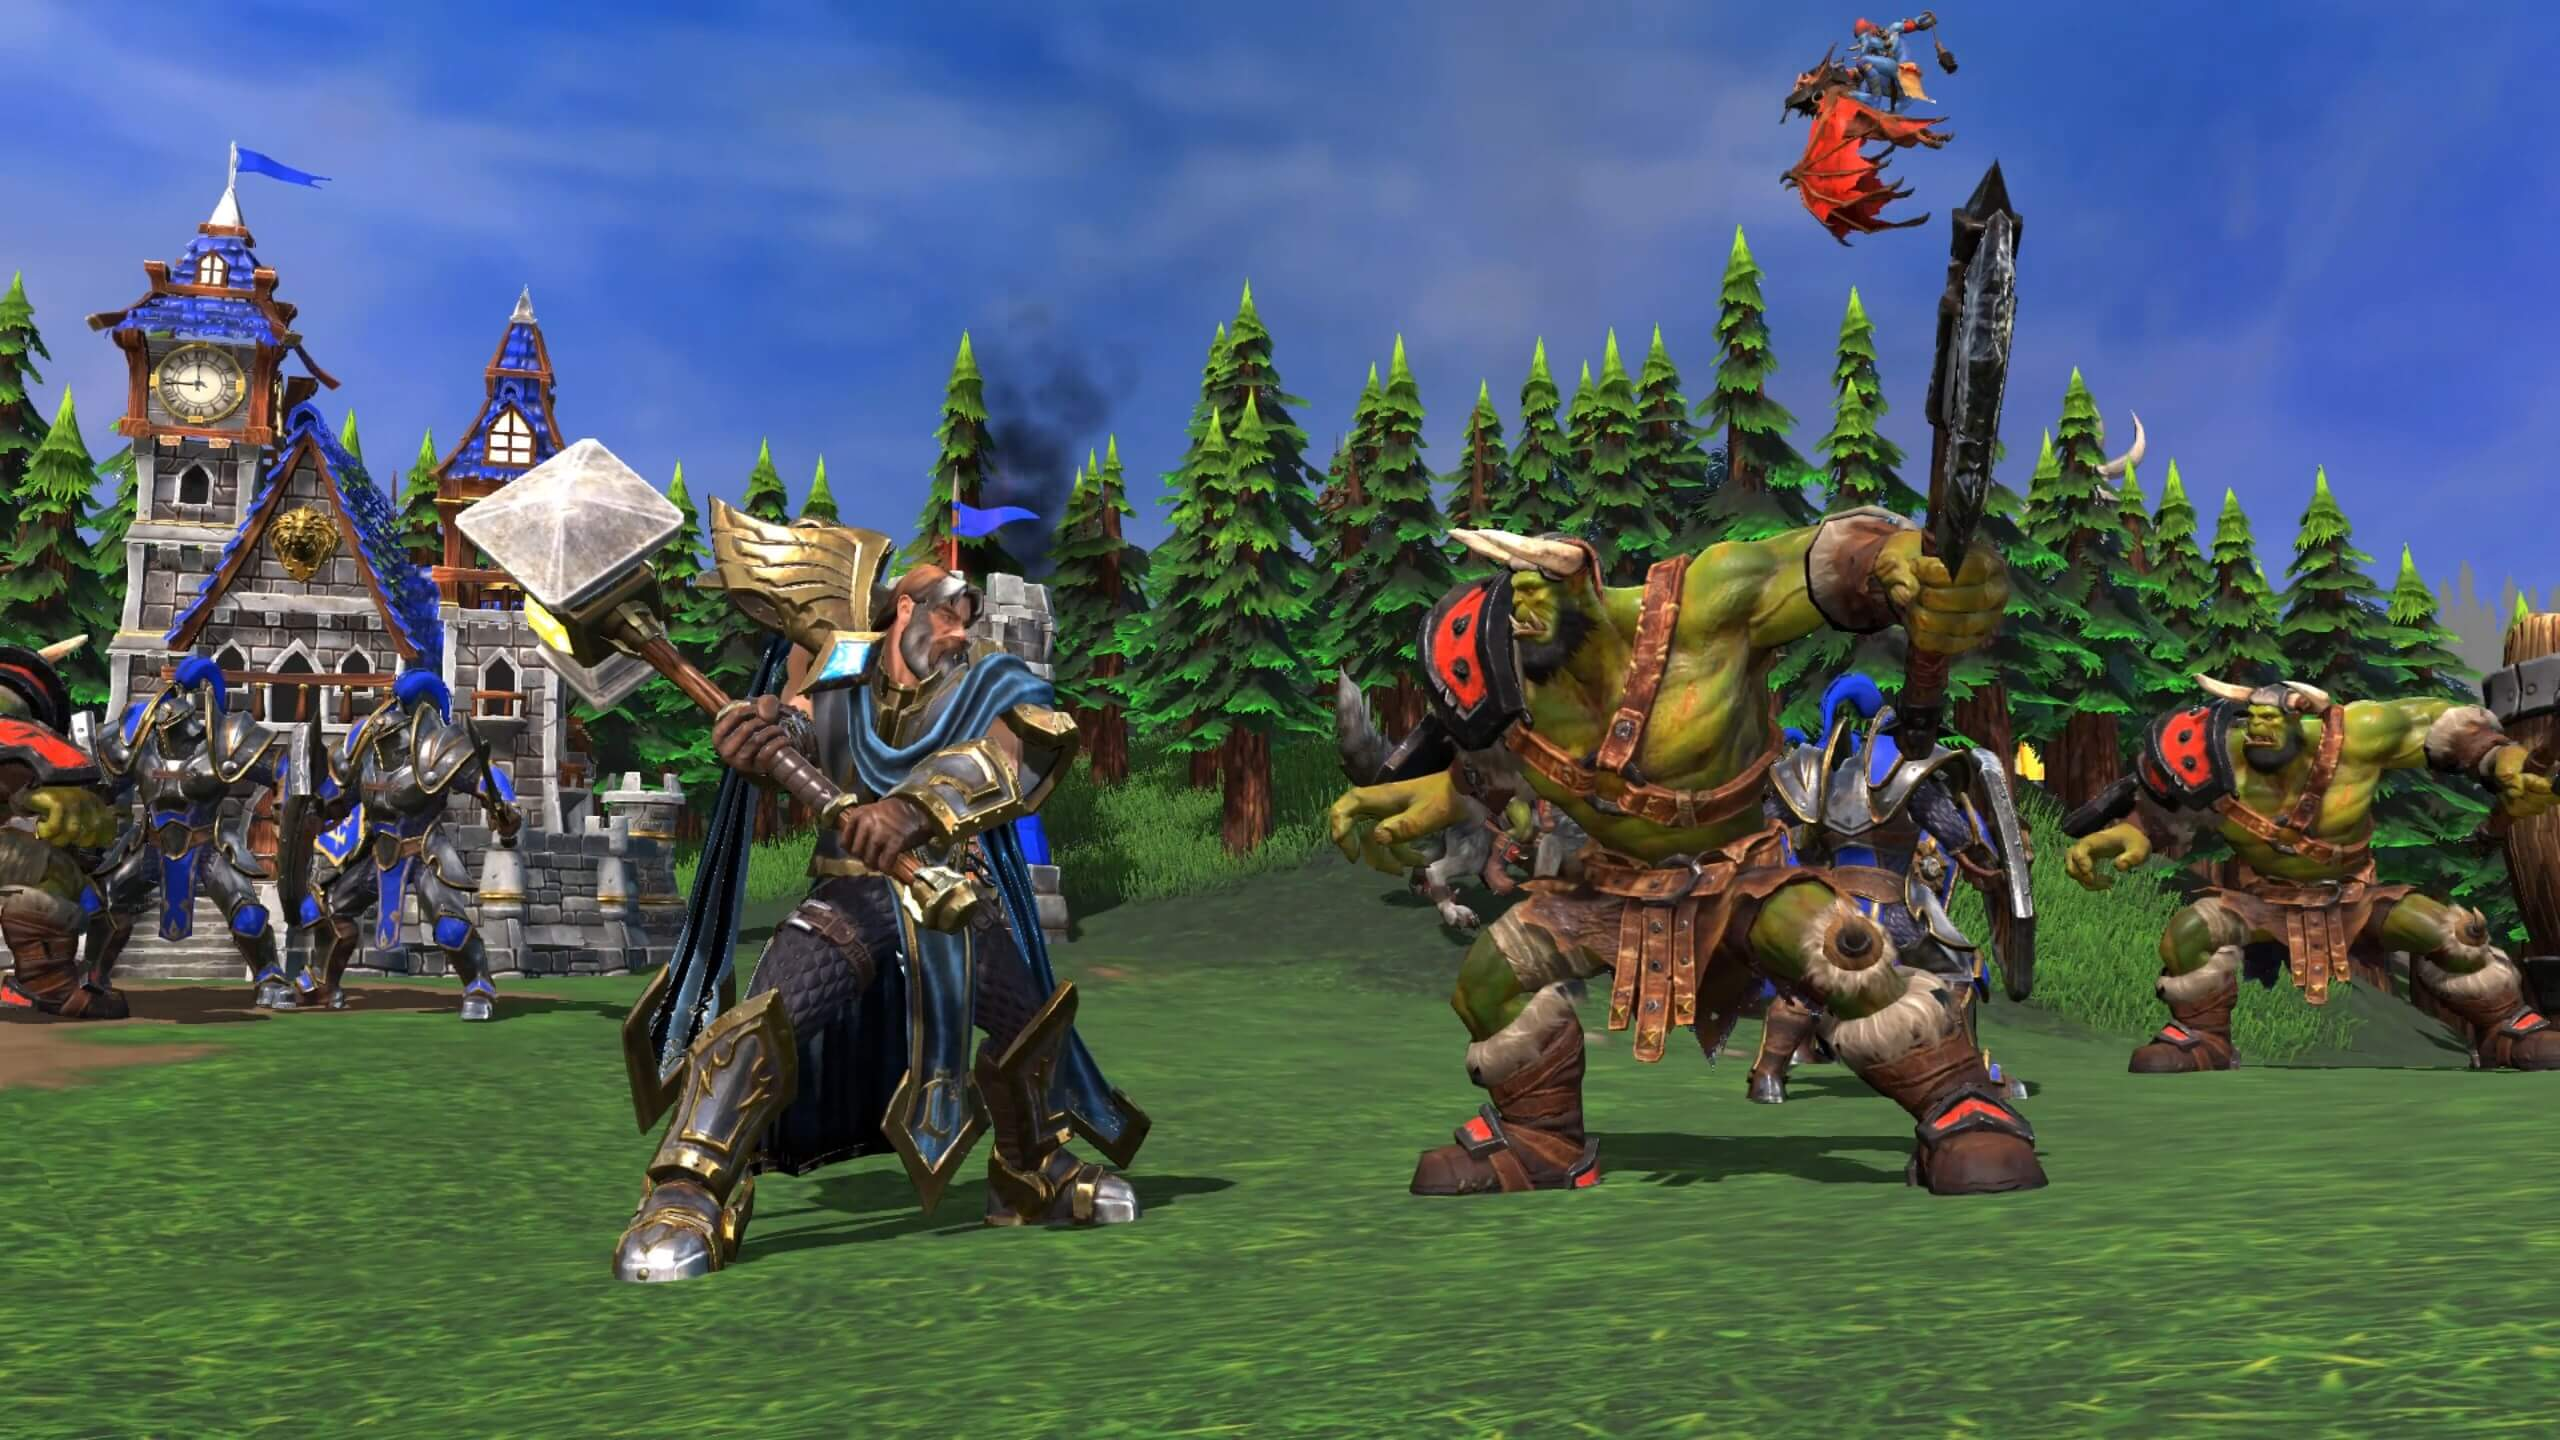 Blizzard is addressing Warcraft III: Reforged shortcomings